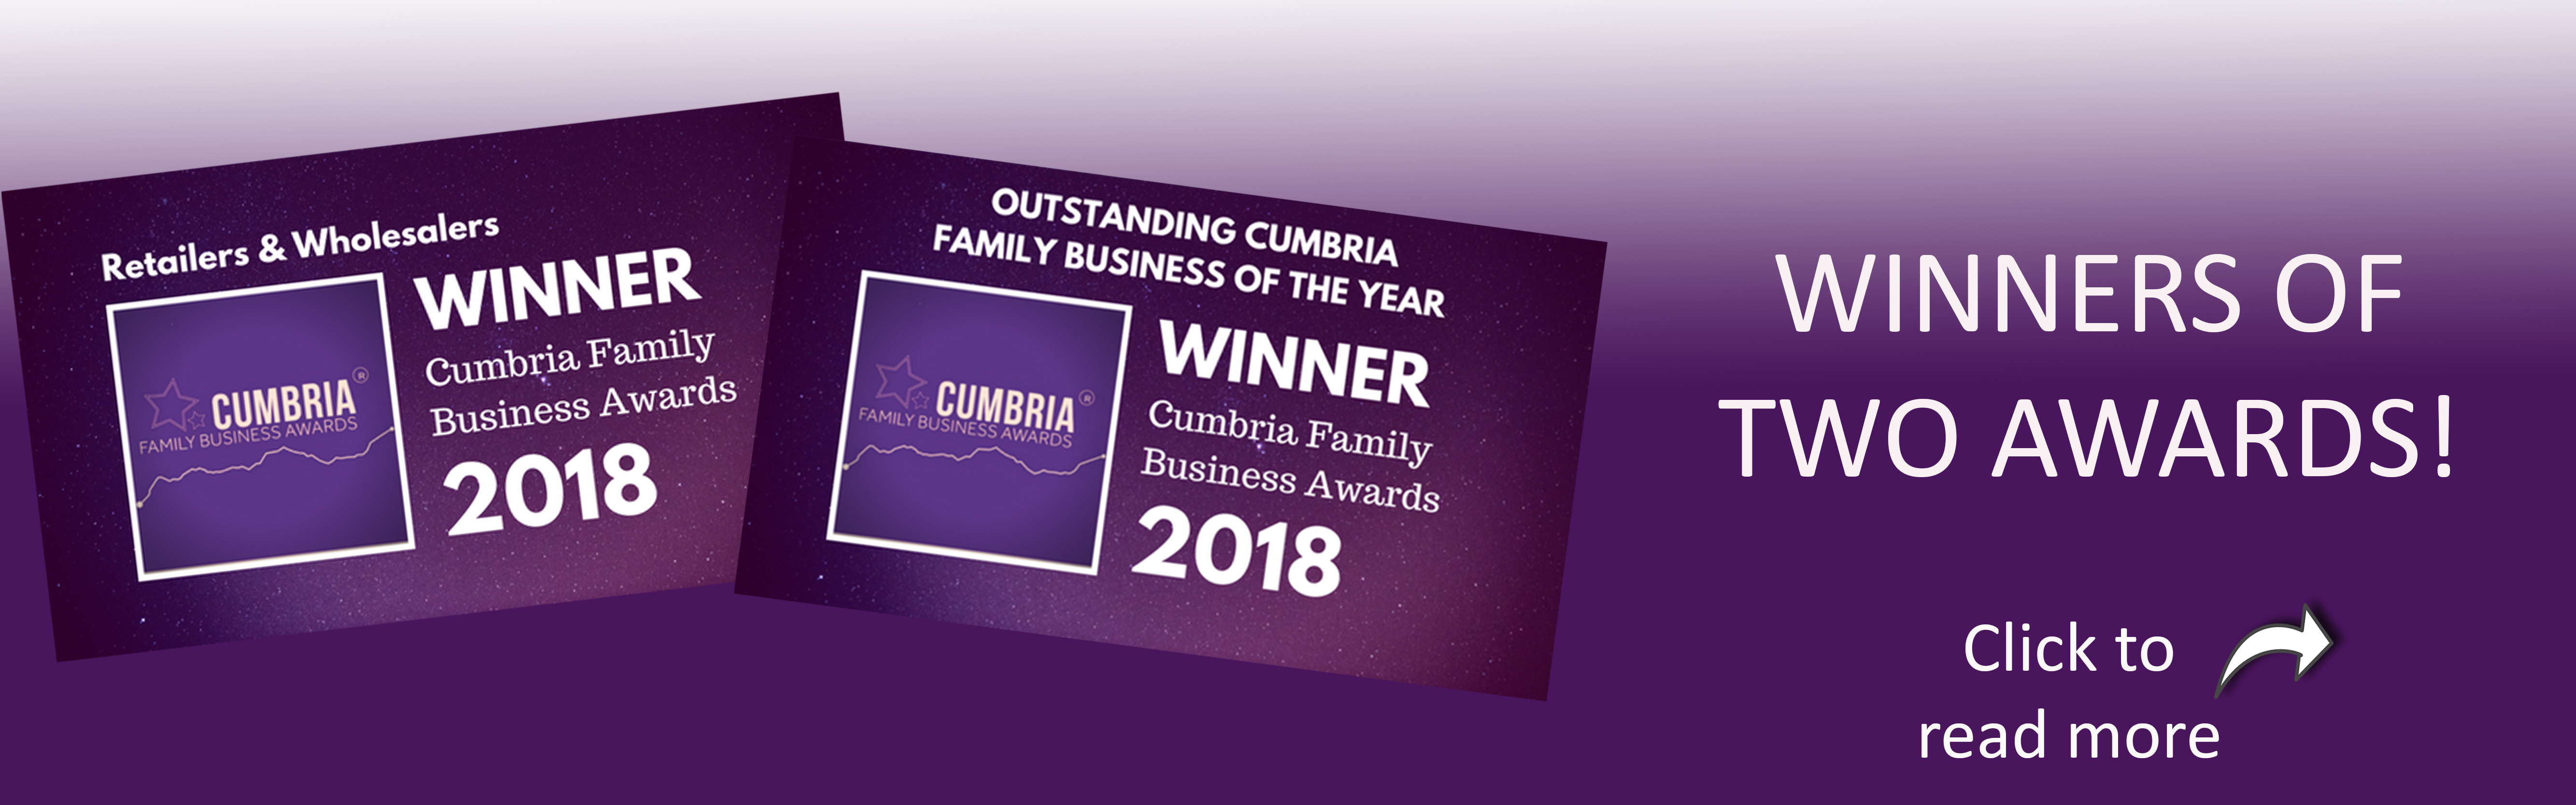 Pioneer Foodservice | Cumbria Family Business Awards | Winners logos